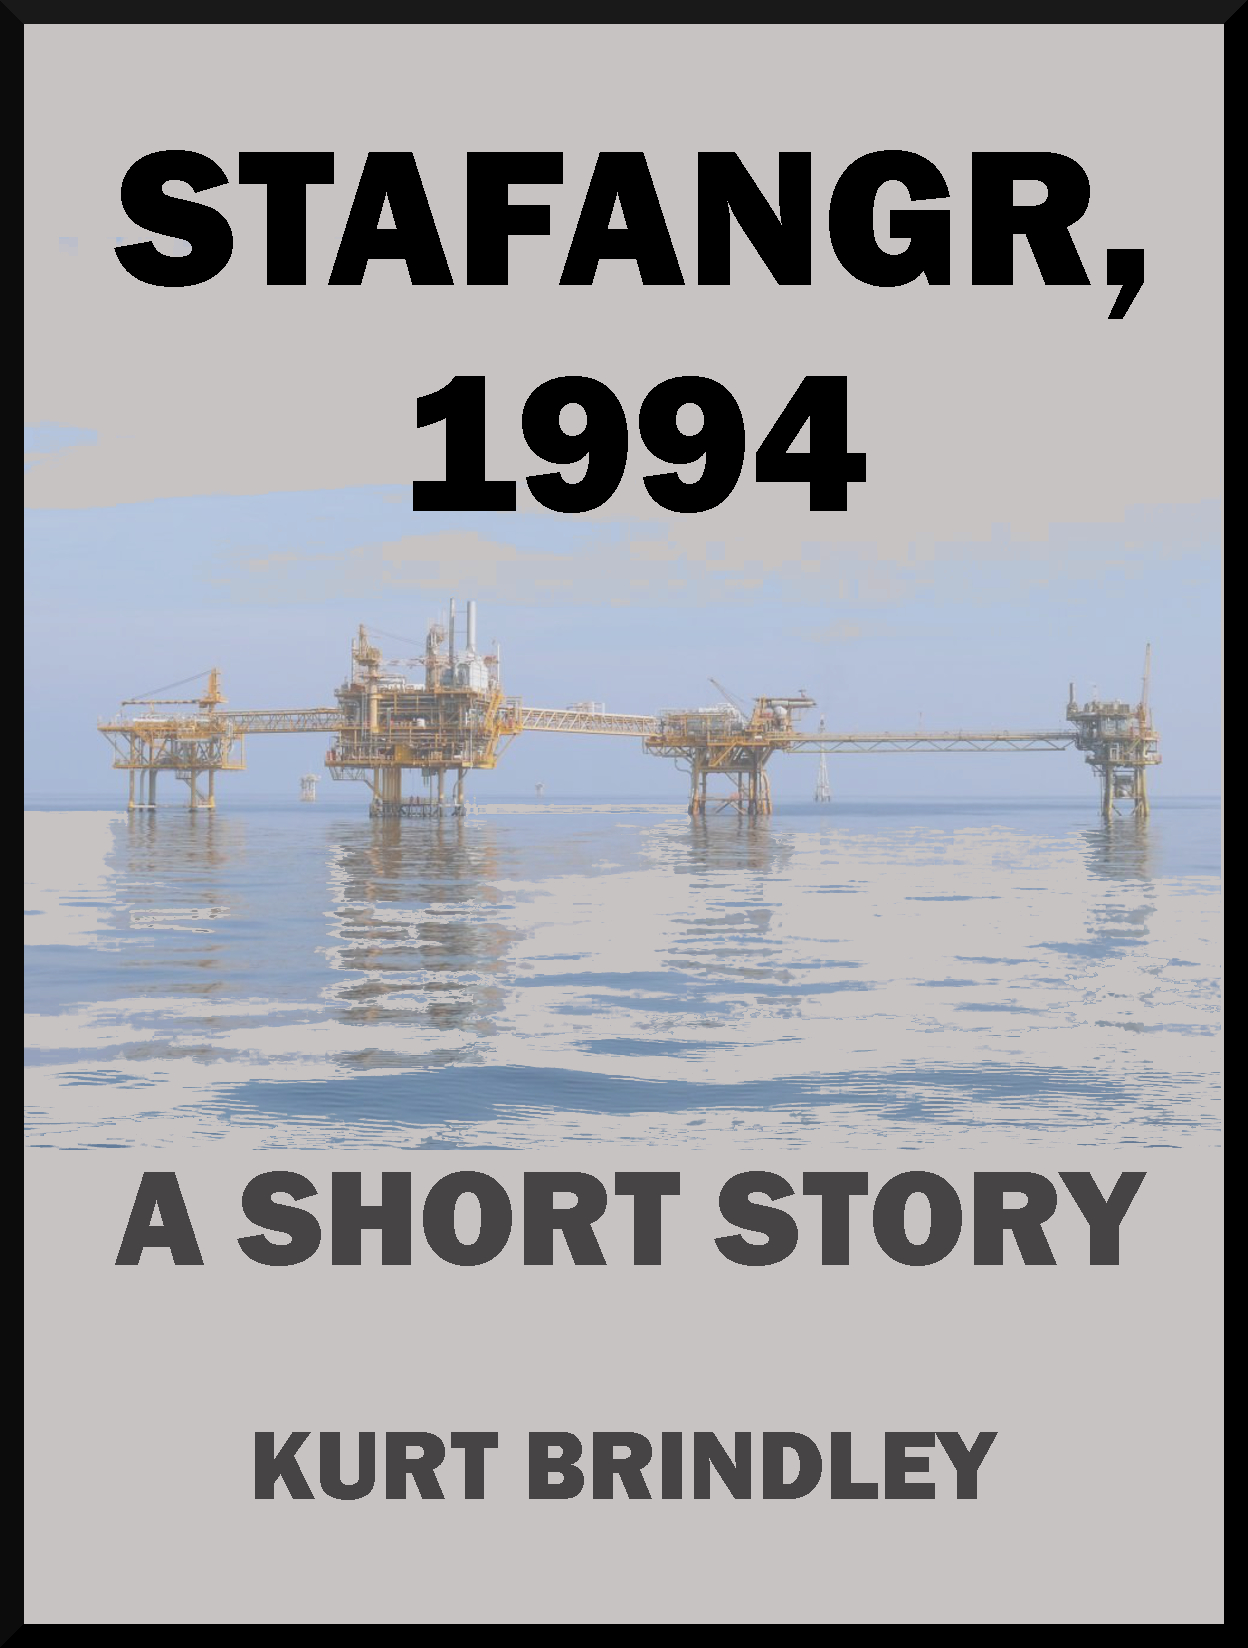 STAFANGER, 1994: A Short Story